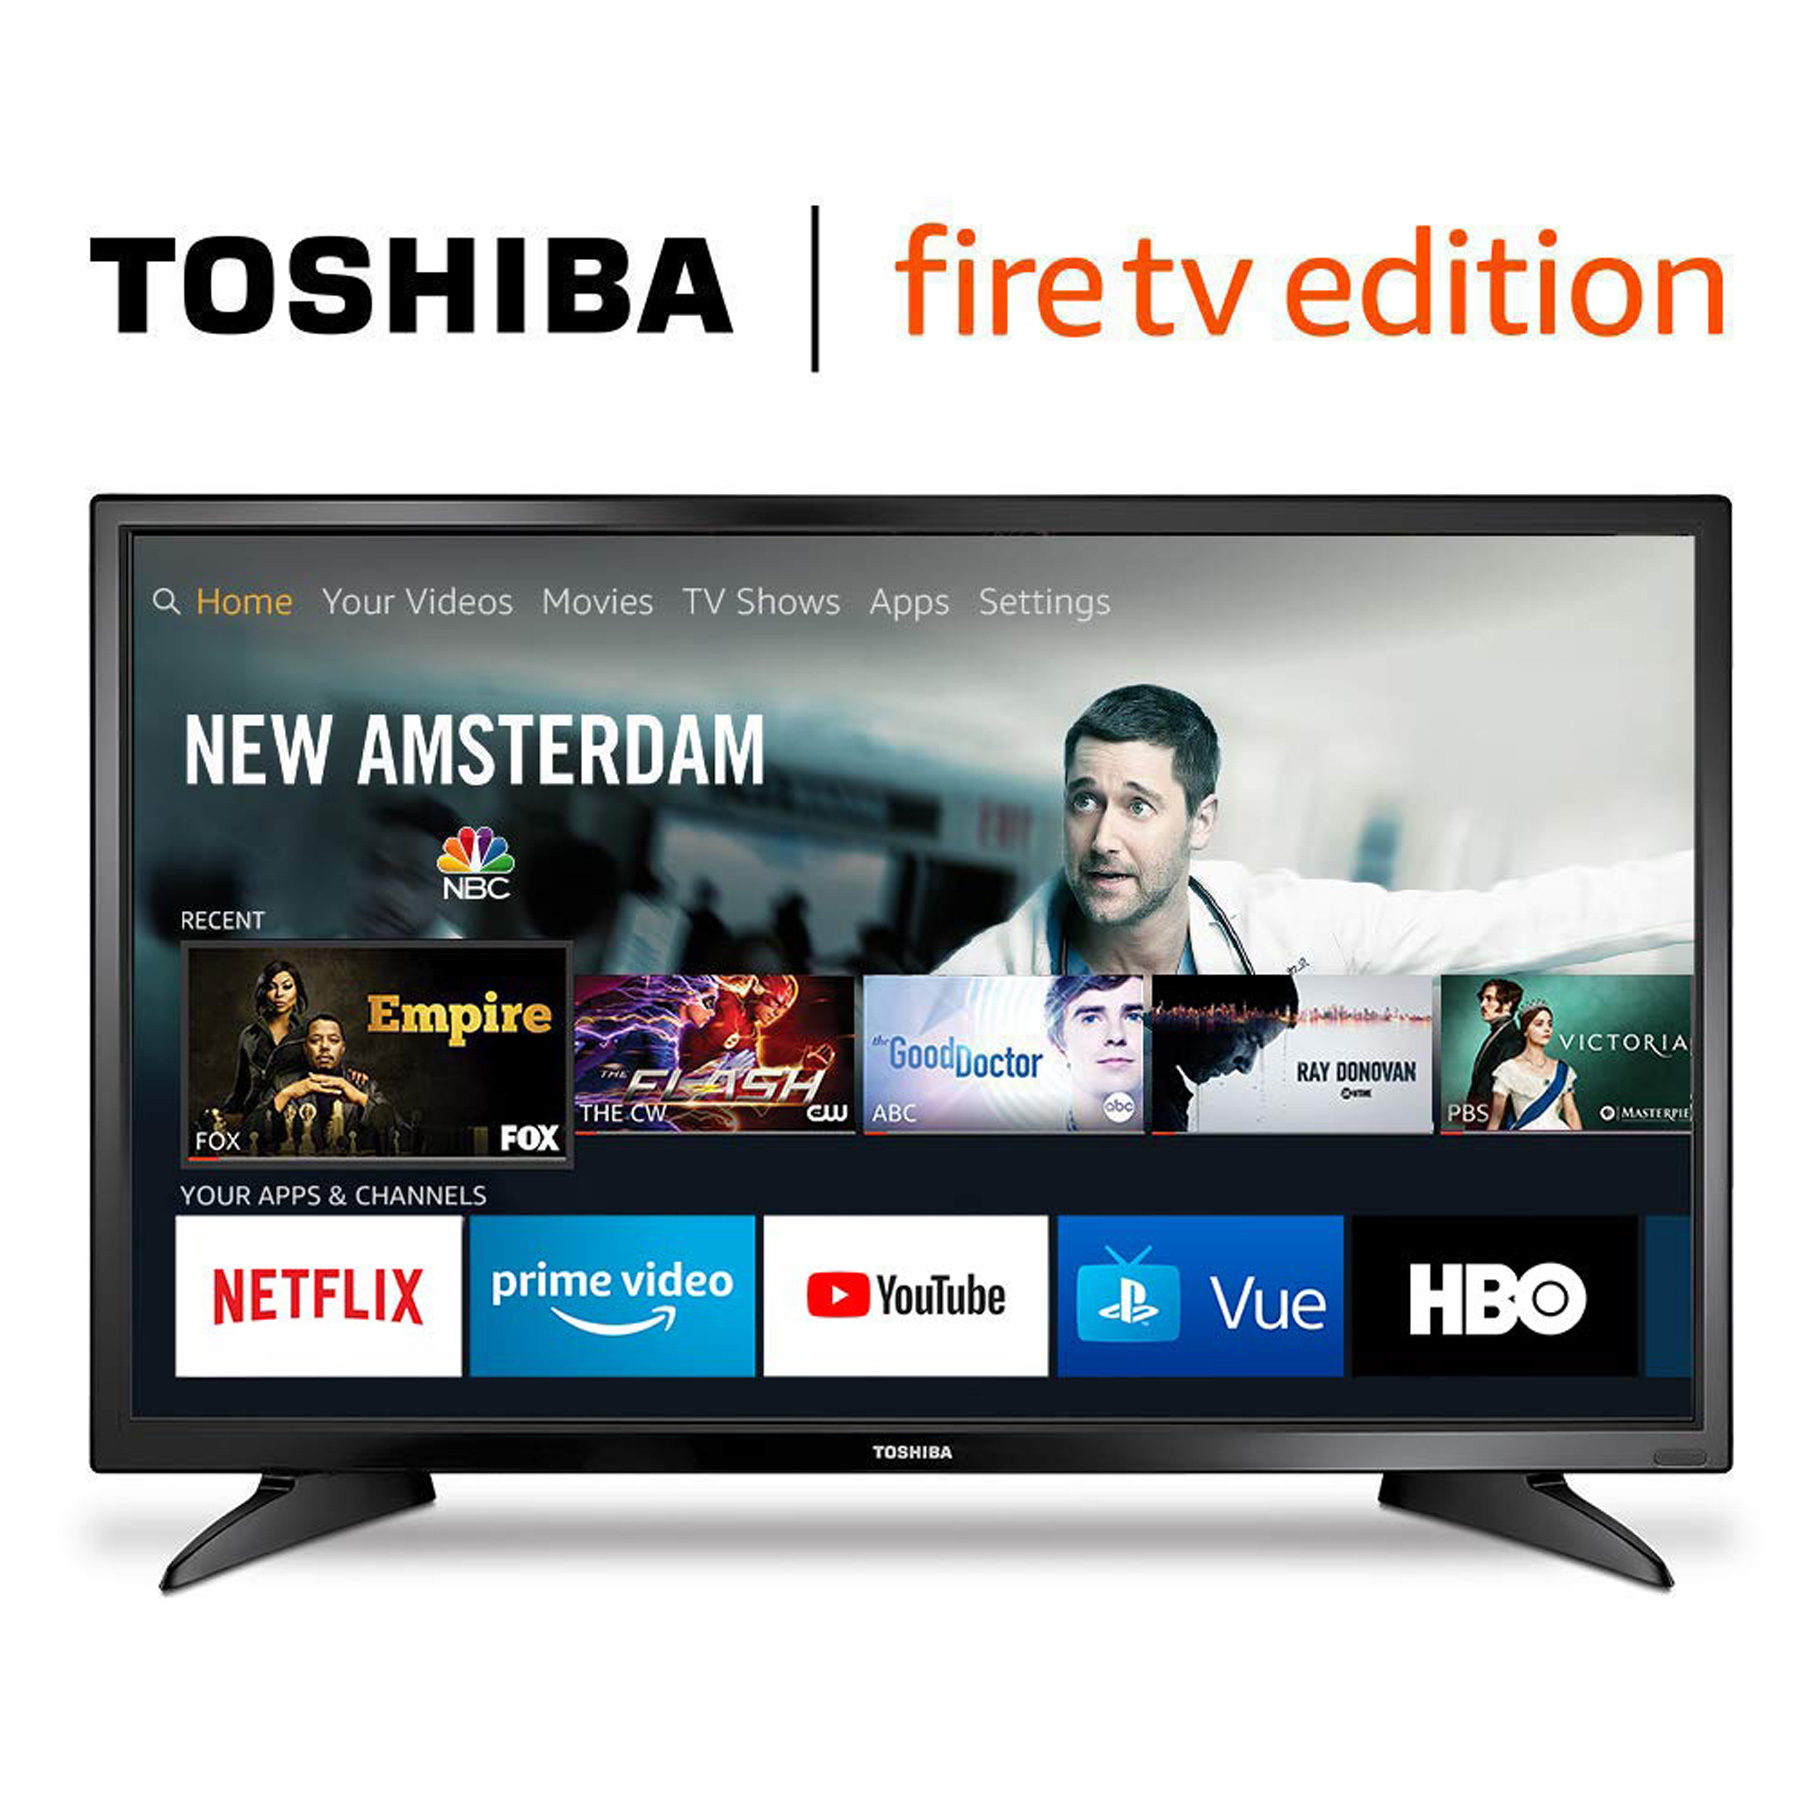 44% off Toshiba 32 inch LED Smart TV - Deal Hunting Babe